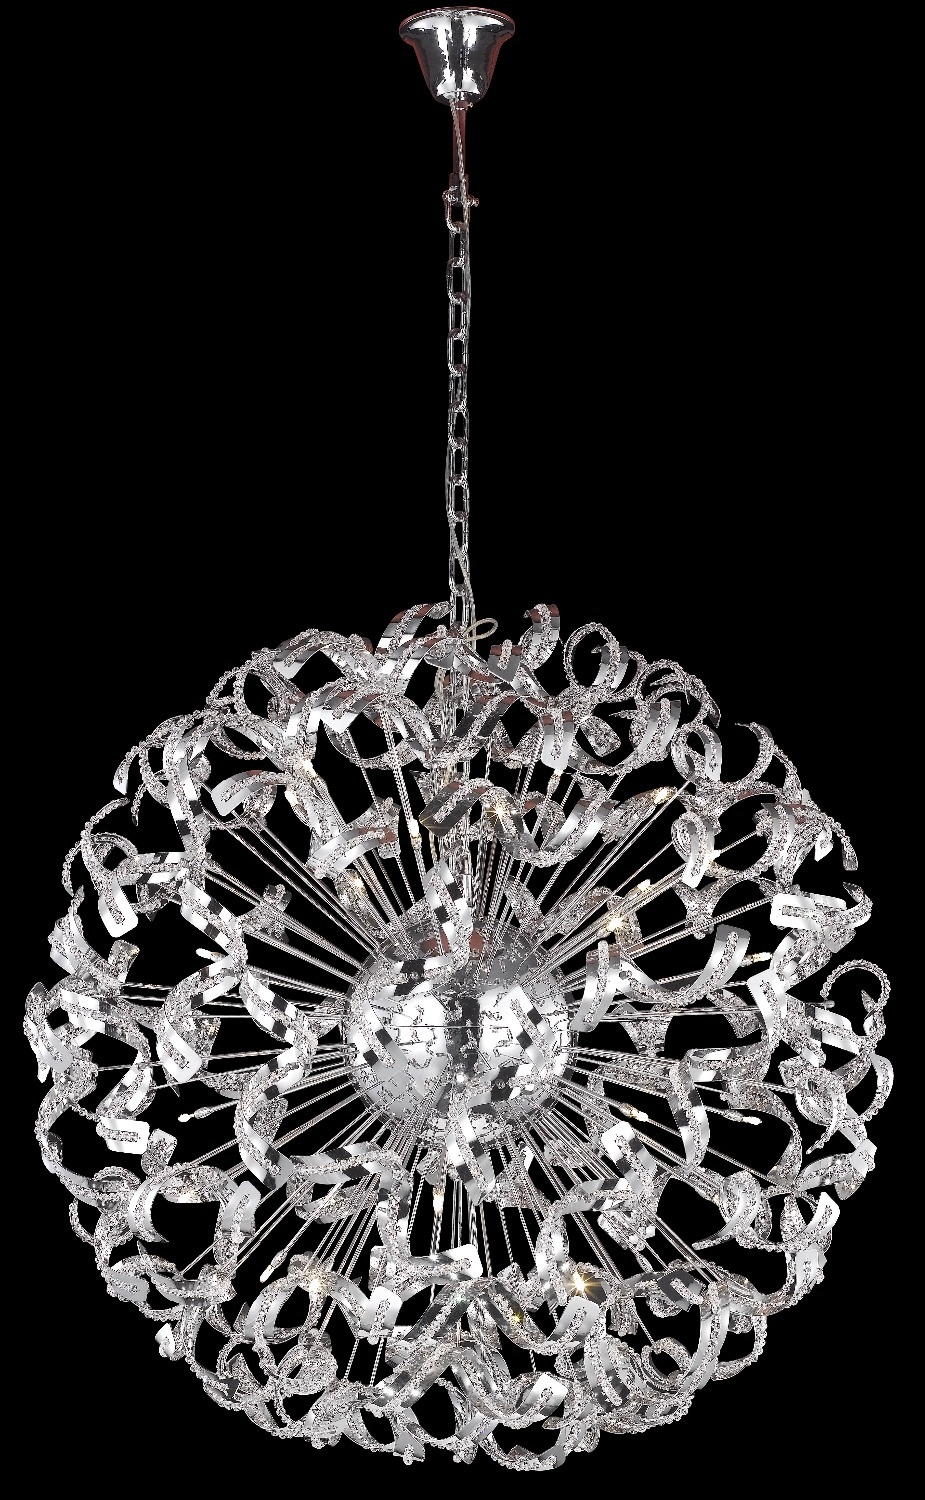 Free Shipping New Modern Spiral Design Chandelier Crystal Lights Pertaining To Chrome And Crystal Chandeliers (Image 16 of 25)